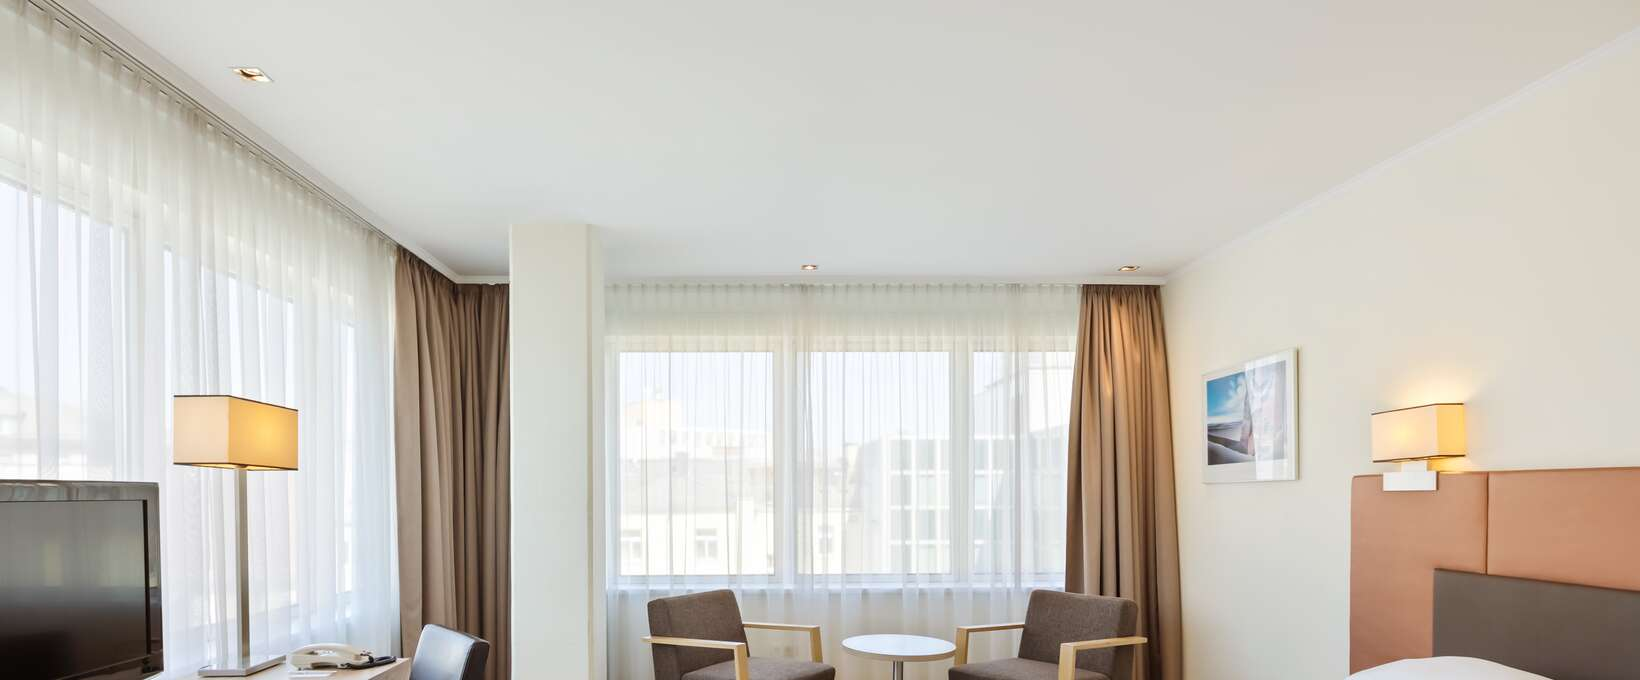 Executive Deluxe room with king size bed | Hotel Schillerpark in Linz